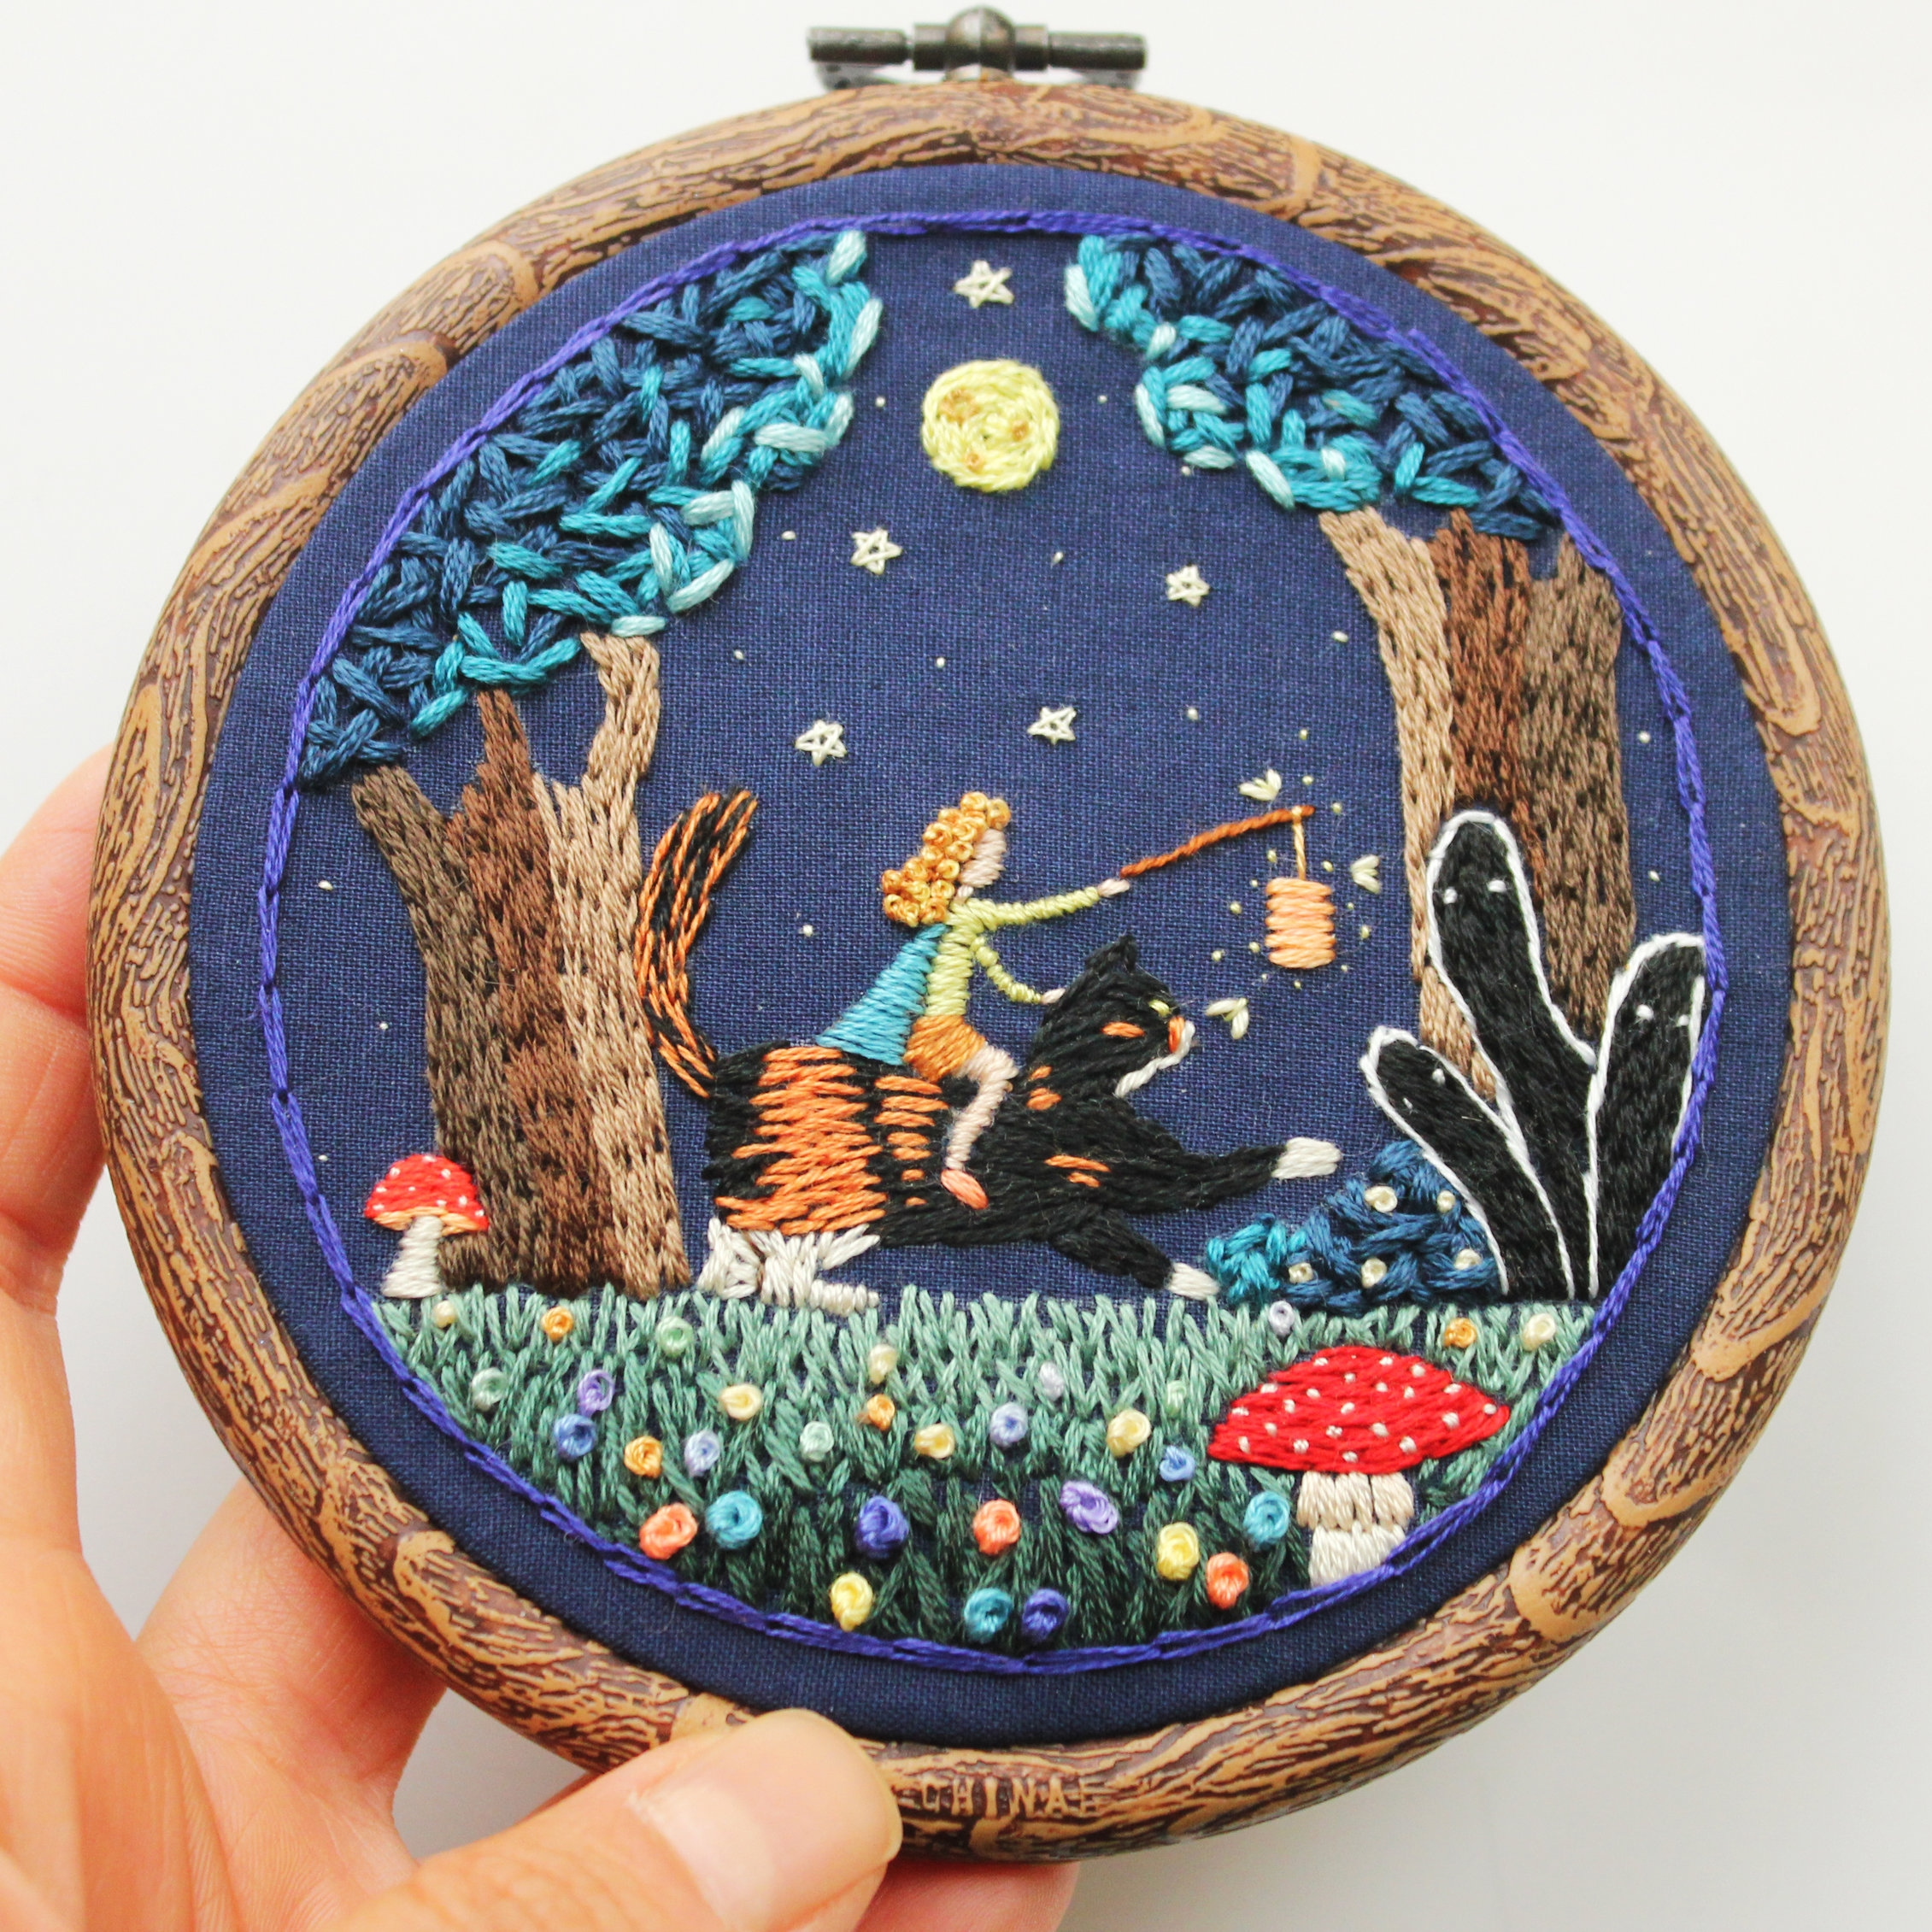 Irem Yazici - Irem Yazici is a self taught fiber artist based in Eskisehir Turkey. Her artistic journey began in 2014 with her interest in craft and she has kept exploring her artistic-self through the medium of embroidery.Her studio practice is divided into two parts: Making embroidered accessories such as pins and creating personal artworks. Her work is a combination of her illustration and embroidery practices, where she explores through color and texture. She creates worlds out of her surreal visions where magical things happen.